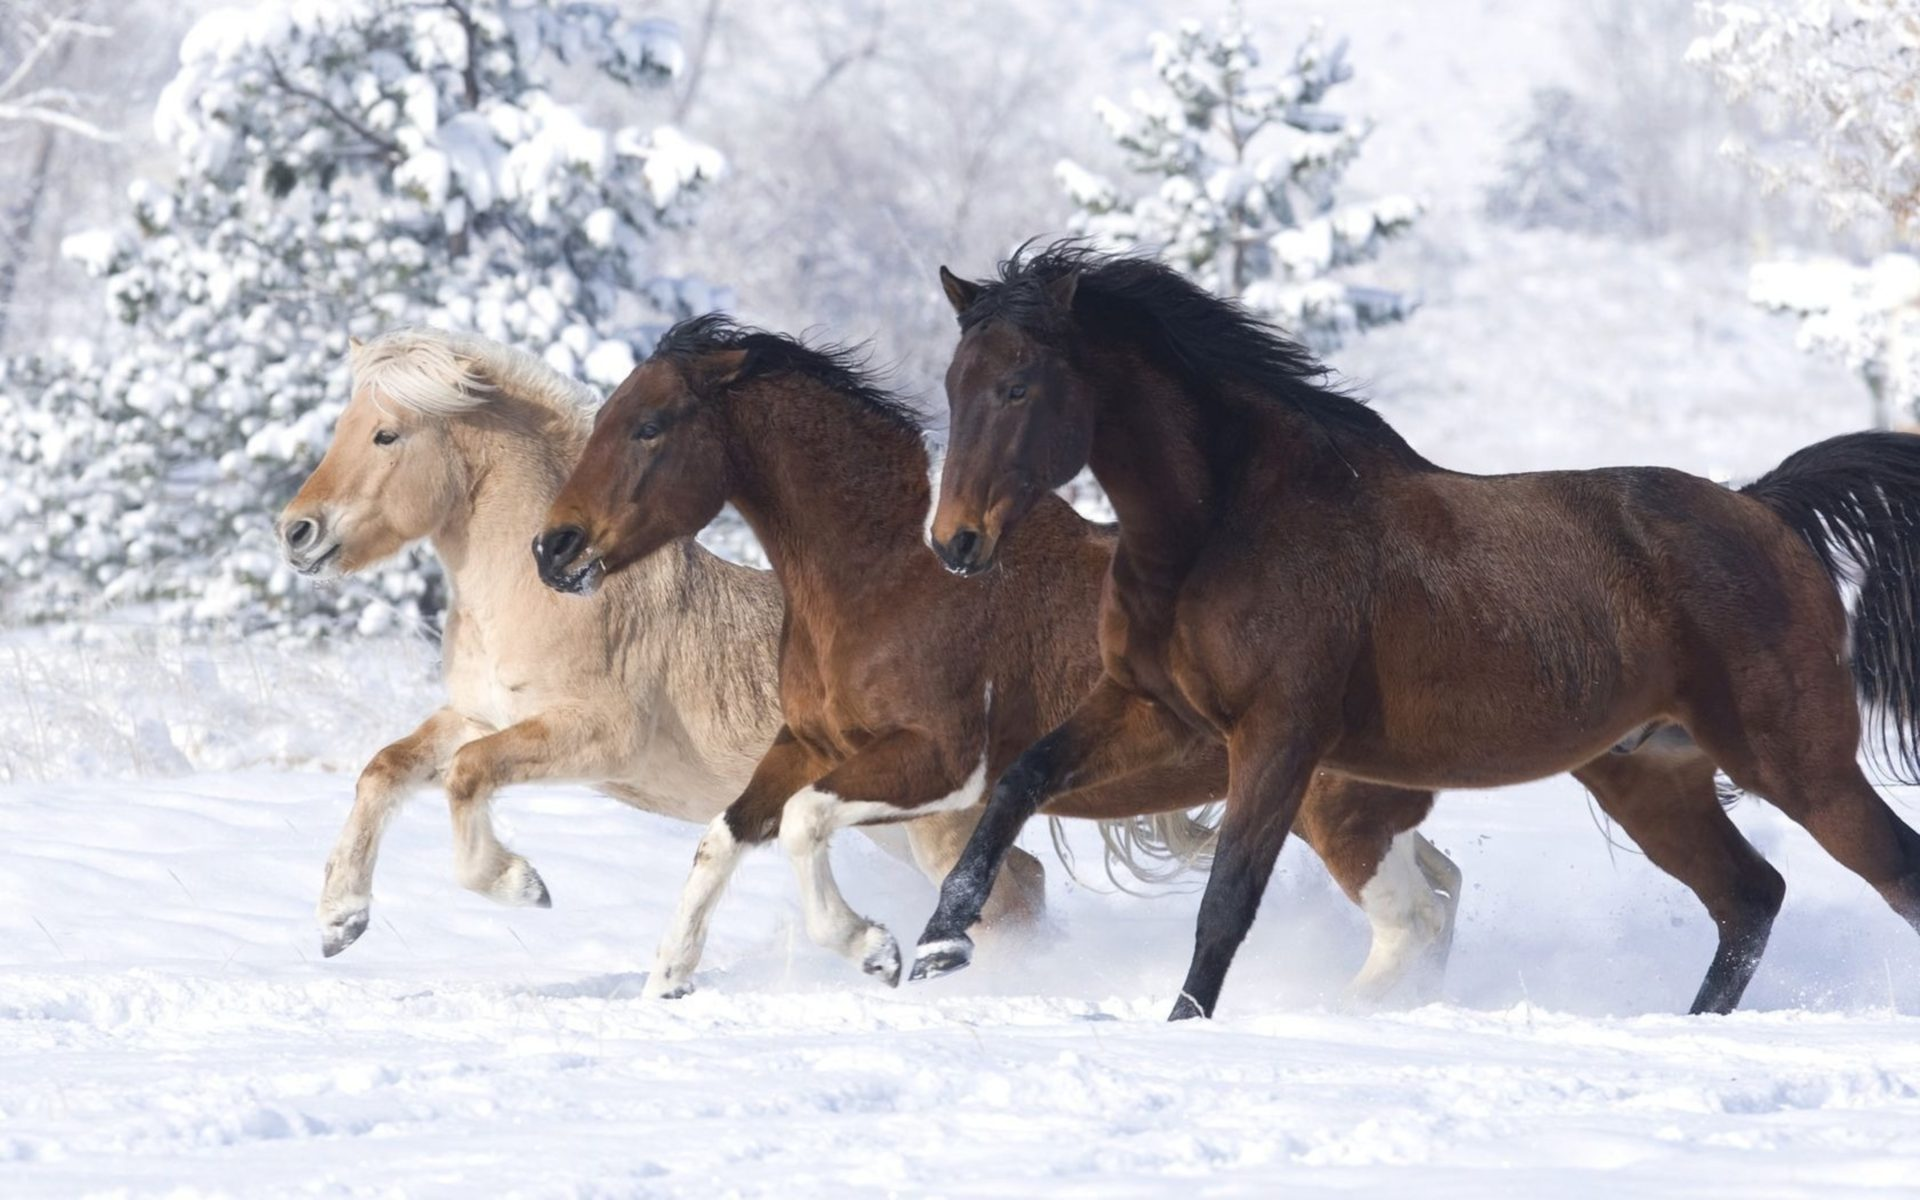 Cute Penguins Iphone Wallpaper Three Beautiful Horses Of Different Colors Running In Snow